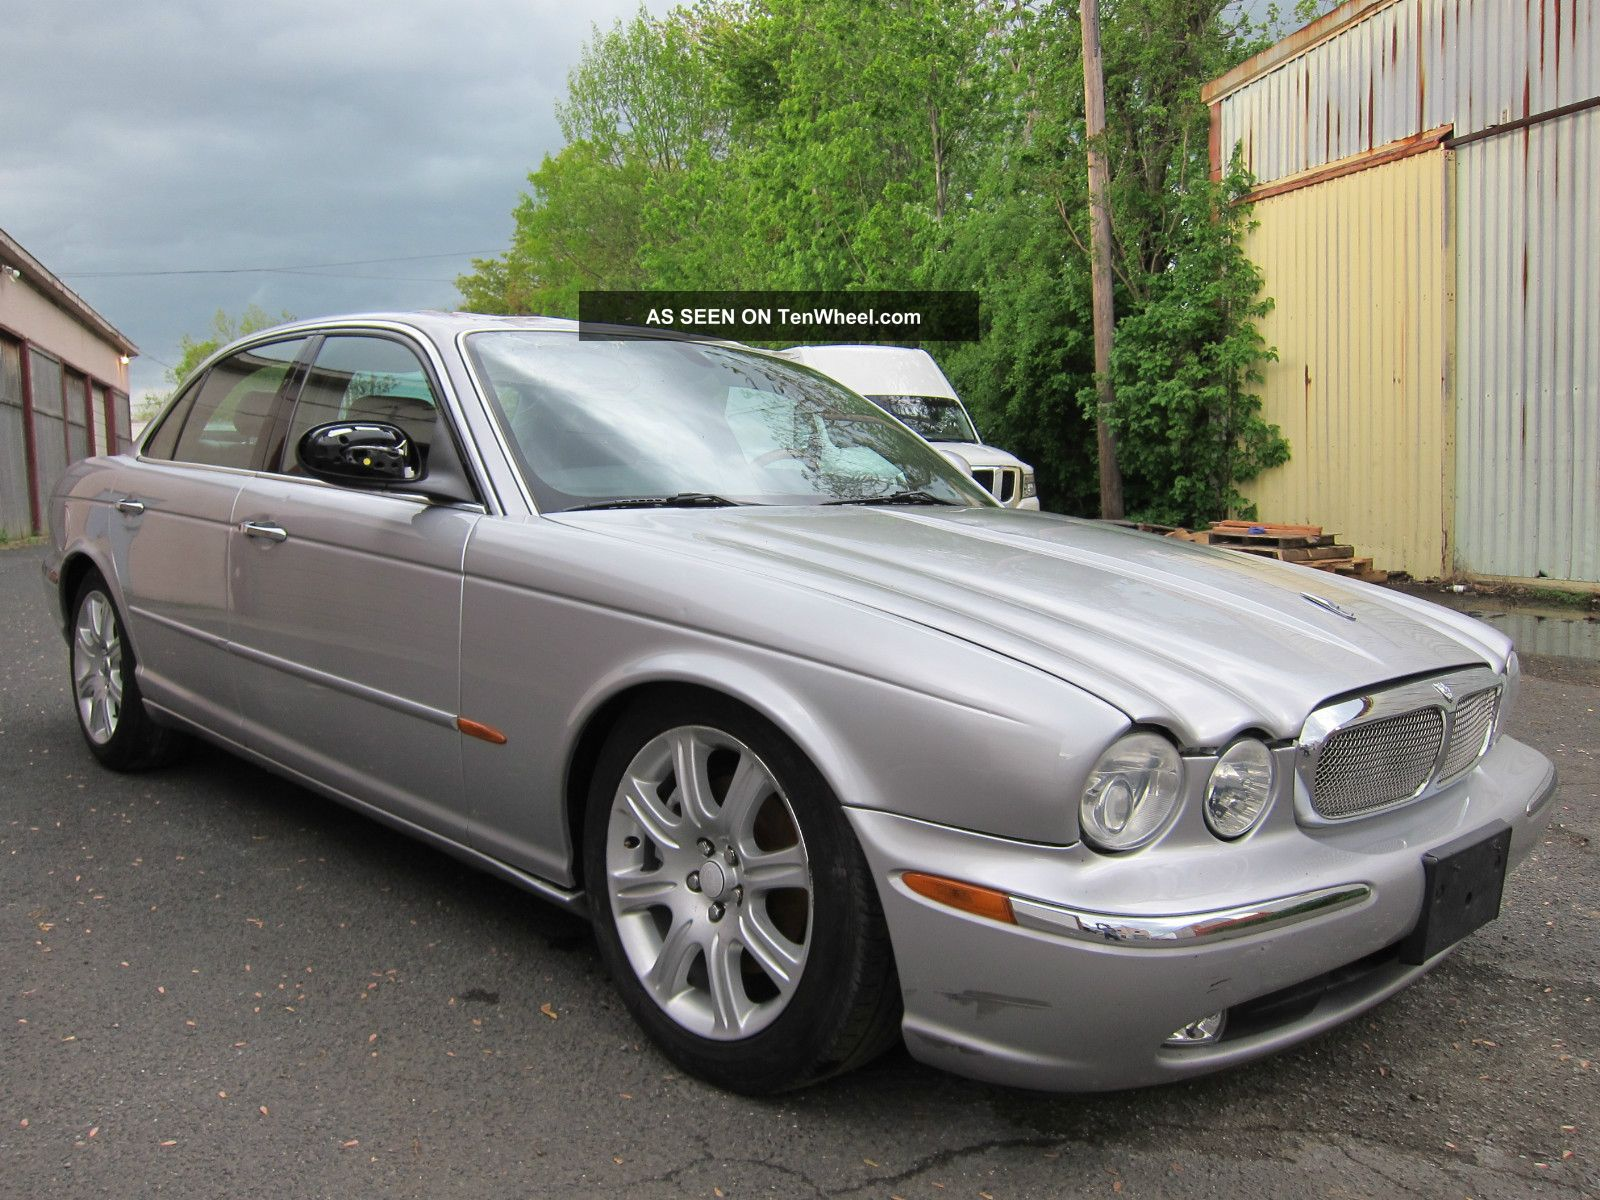 jaguar xj8 2004 storm damage to roof car priced to sell. Black Bedroom Furniture Sets. Home Design Ideas